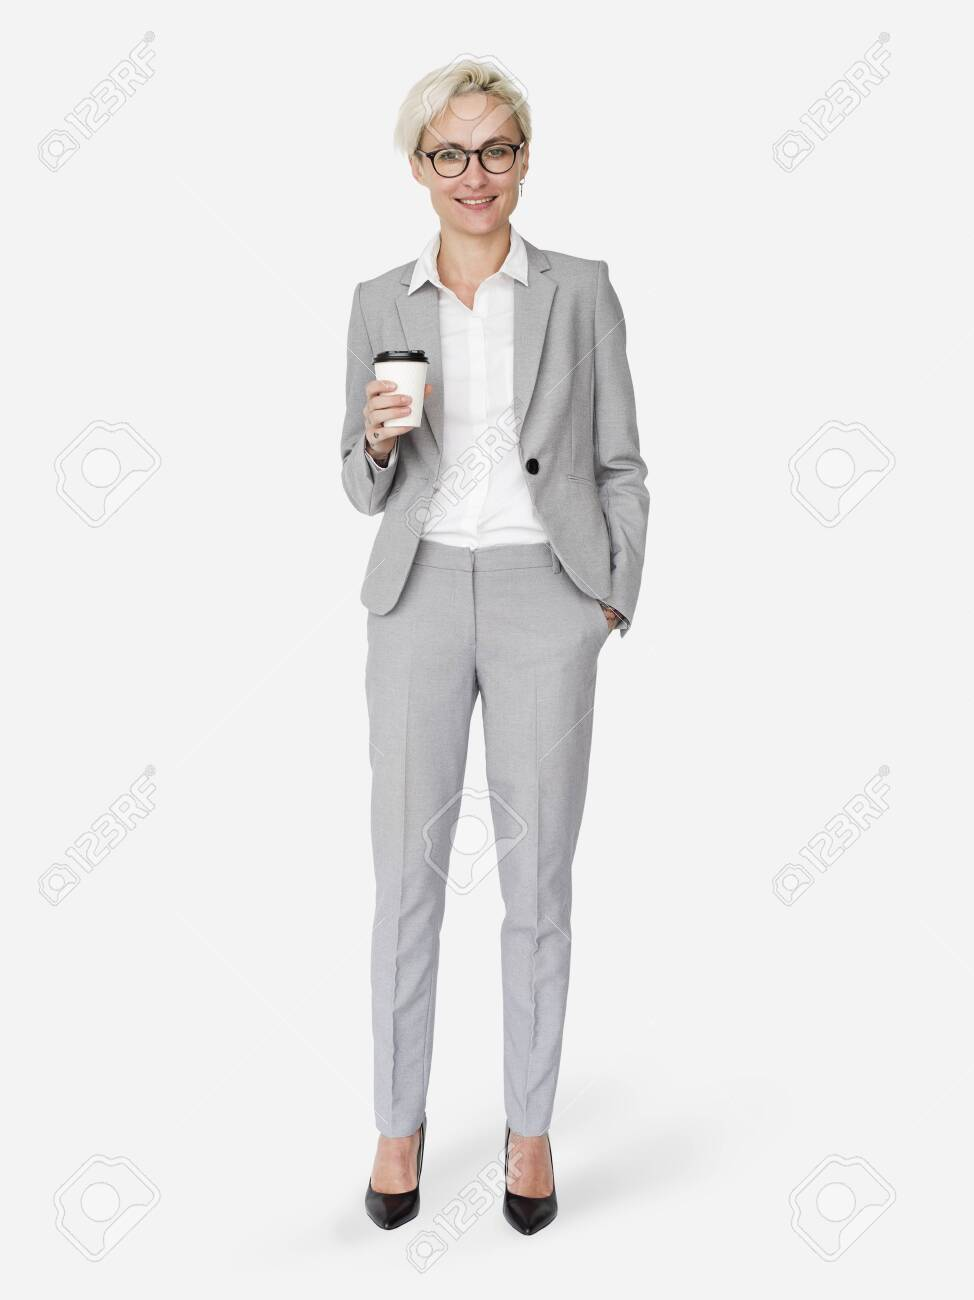 Cheerful businesswoman holding a coffee cup mockup character isolated on a white background - 122425354